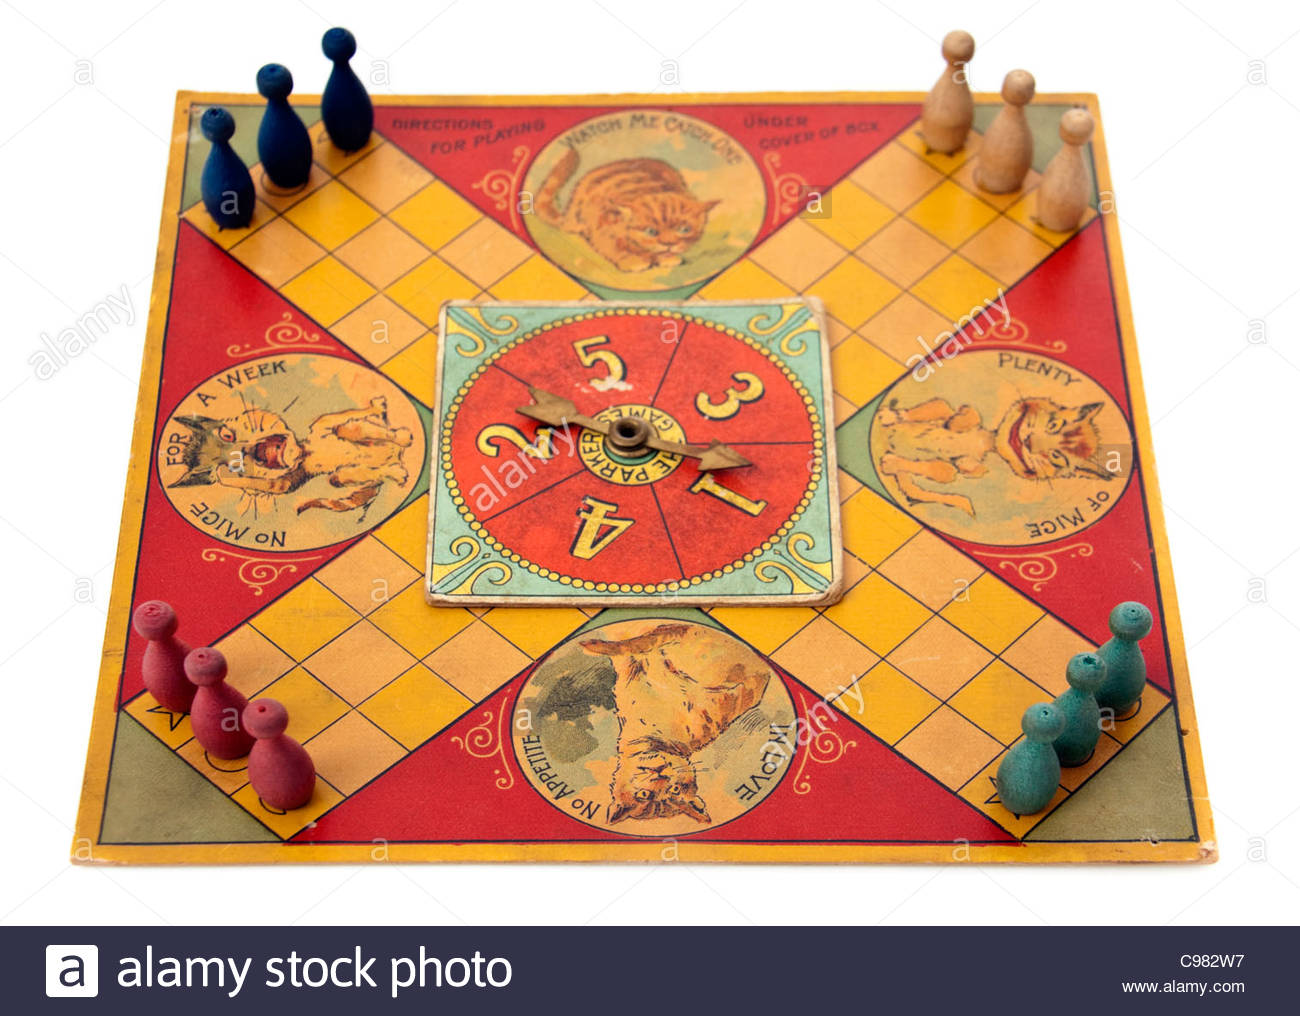 Rare antique (1895) 'Puss in the Corner' board game by Parker Brothers, Salem, Massachusetts, USA - Stock Image